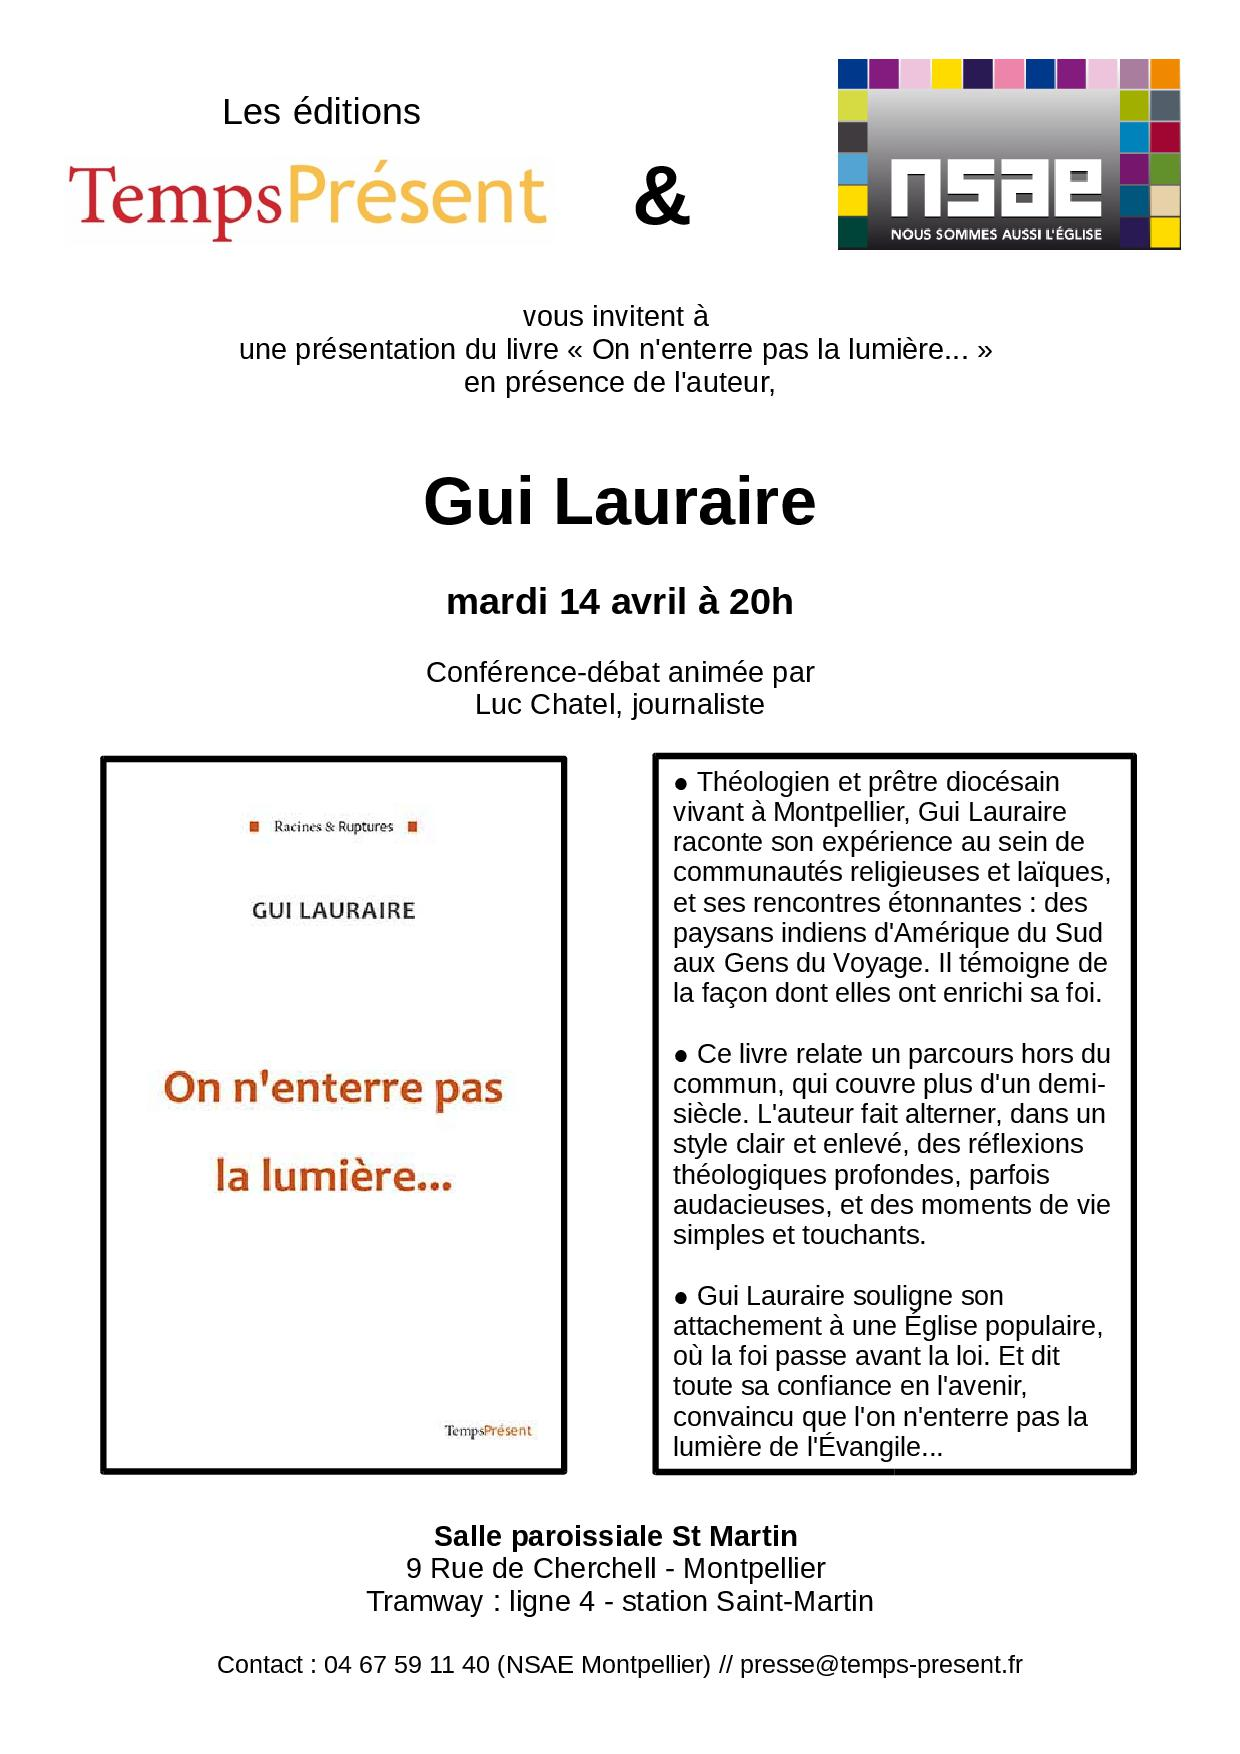 GuiLauraire